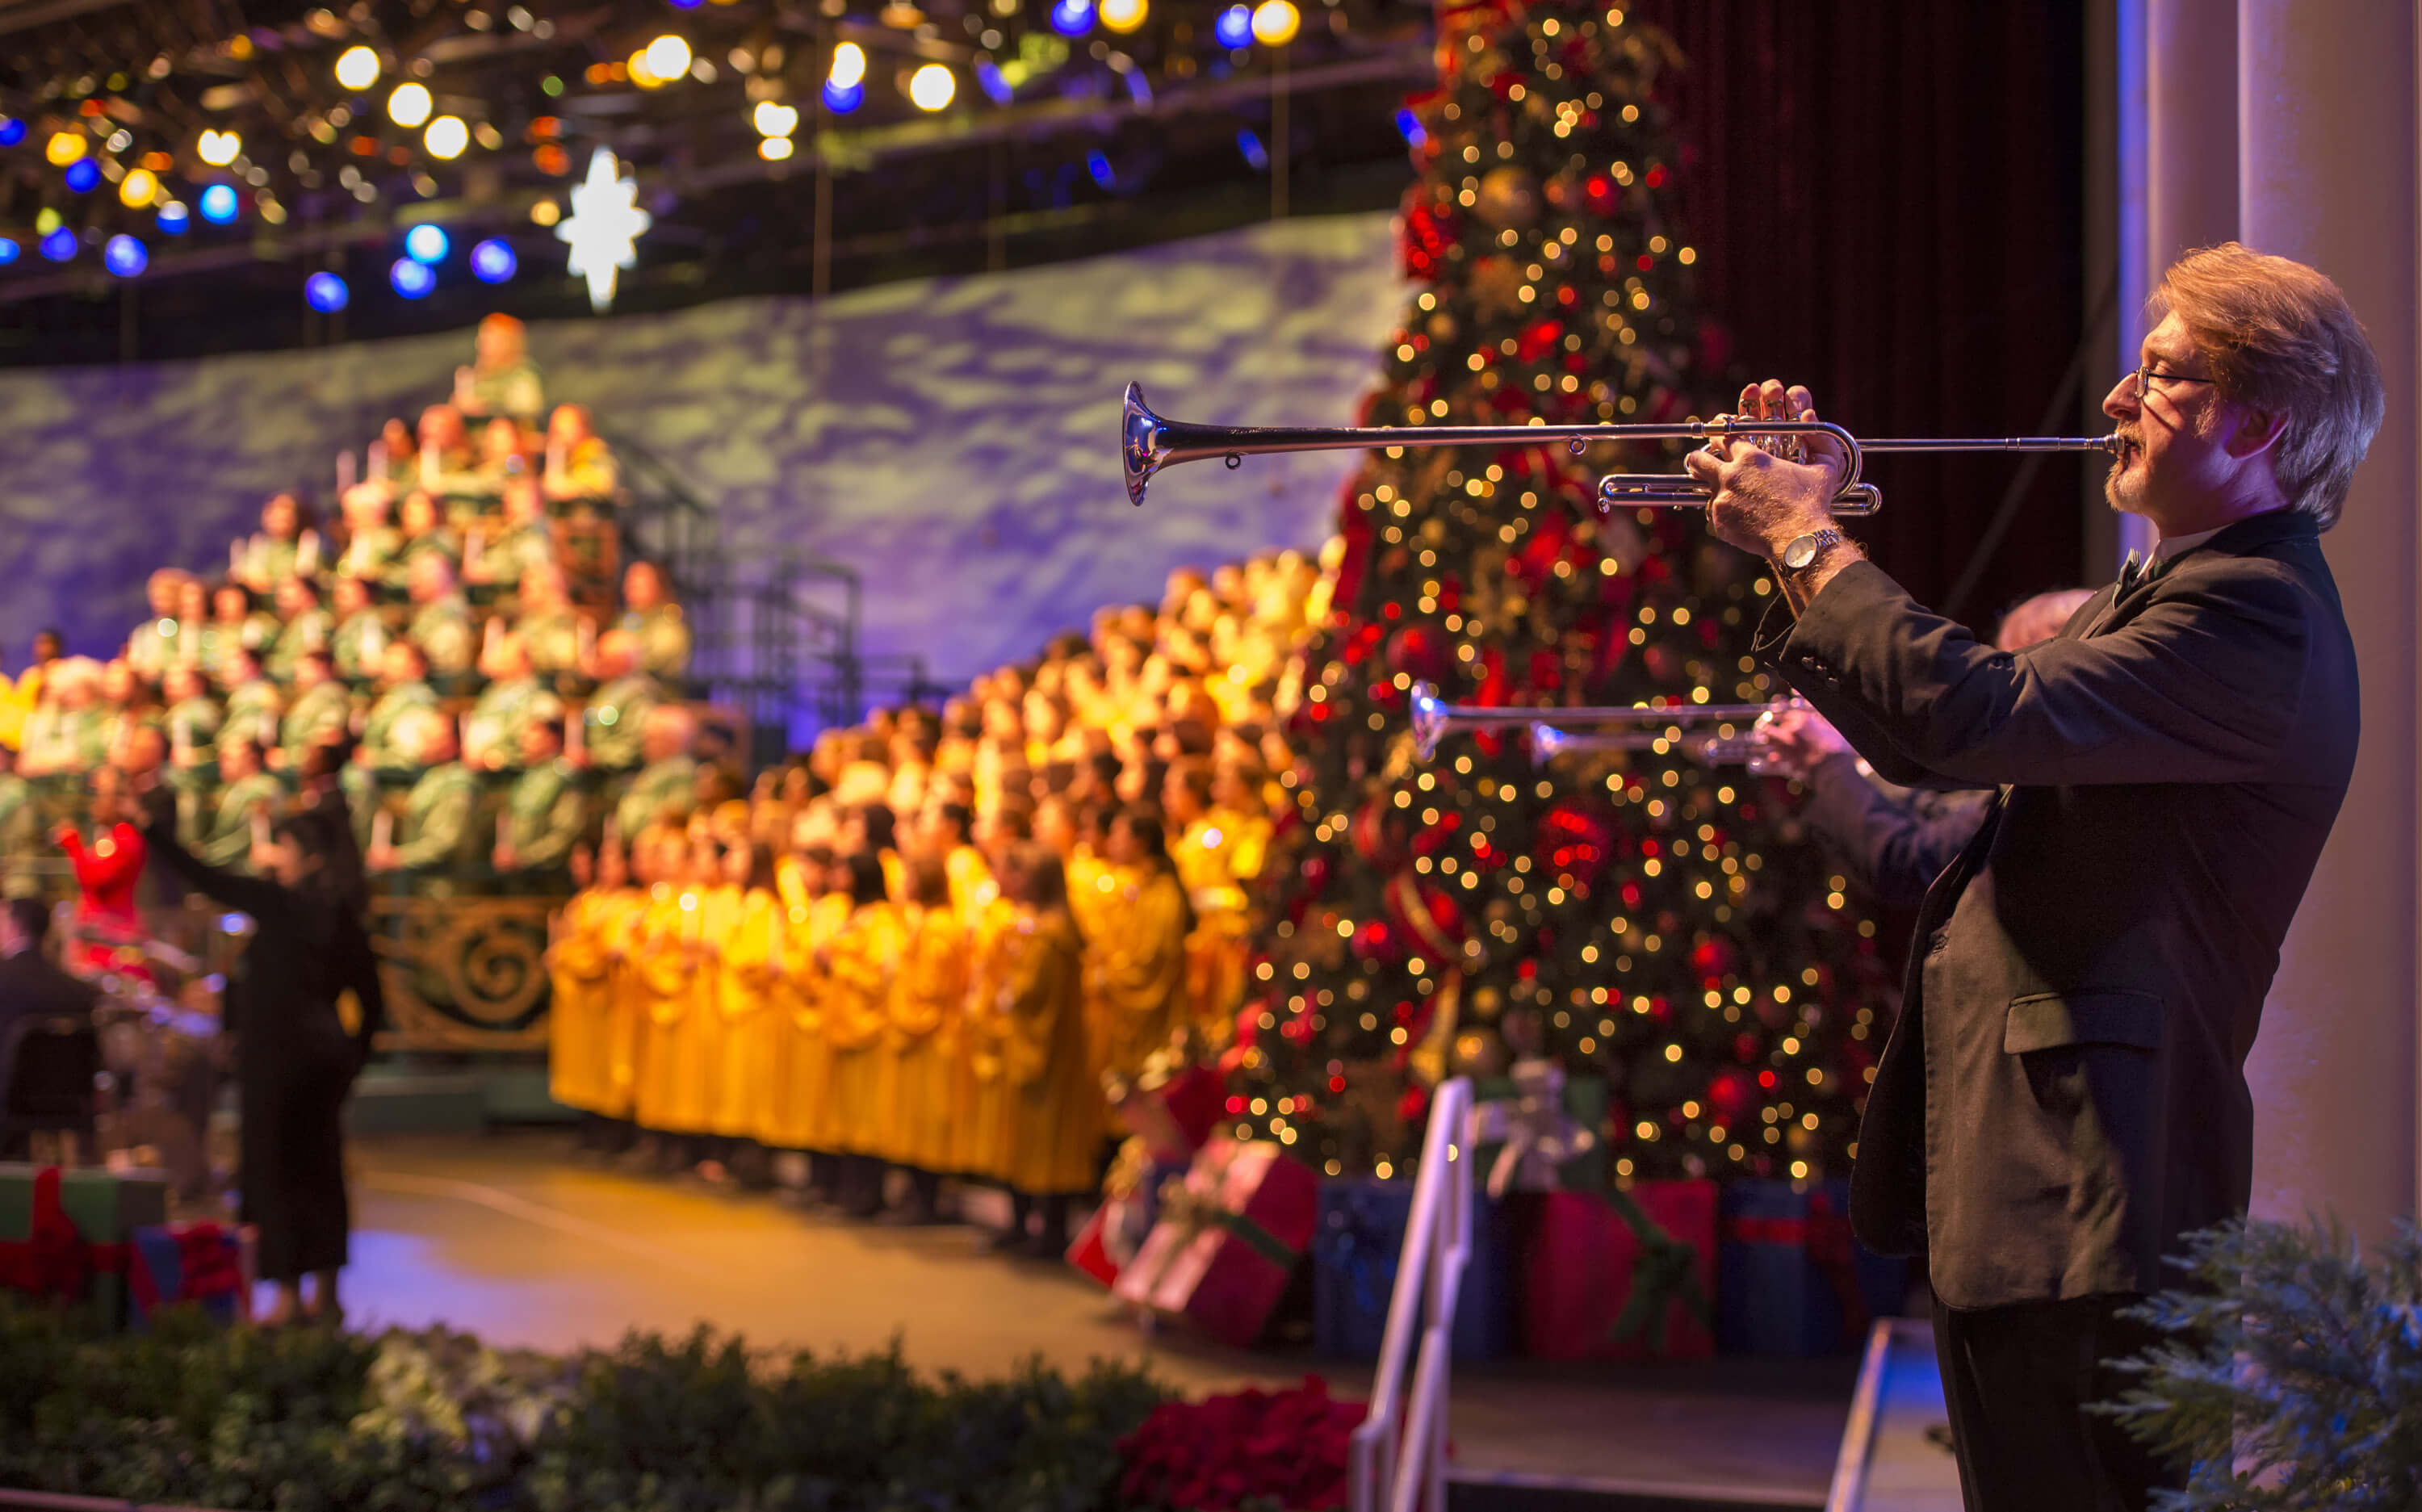 disney world holiday events 2018 epcot candlelight processional - When Does Disney World Decorate For Christmas